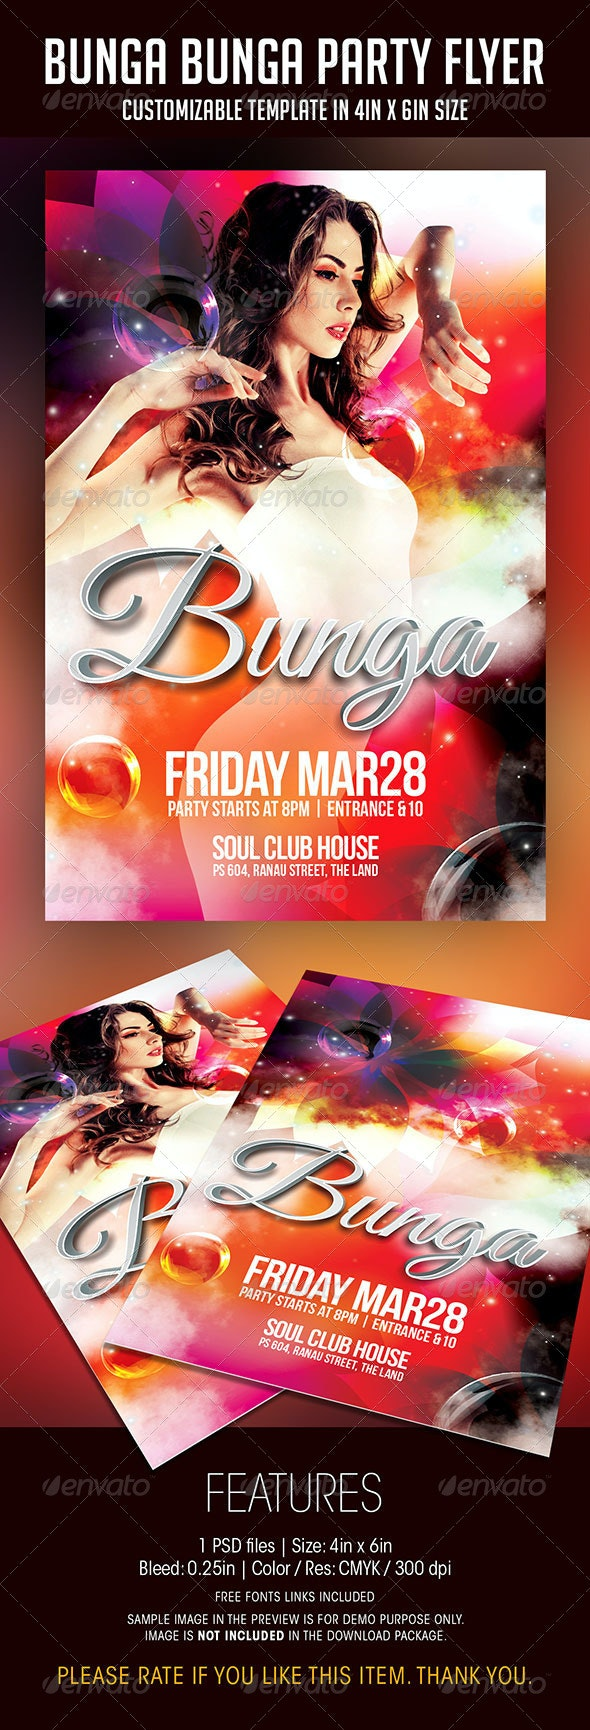 Bunga Bunga Party Flyer - Clubs & Parties Events